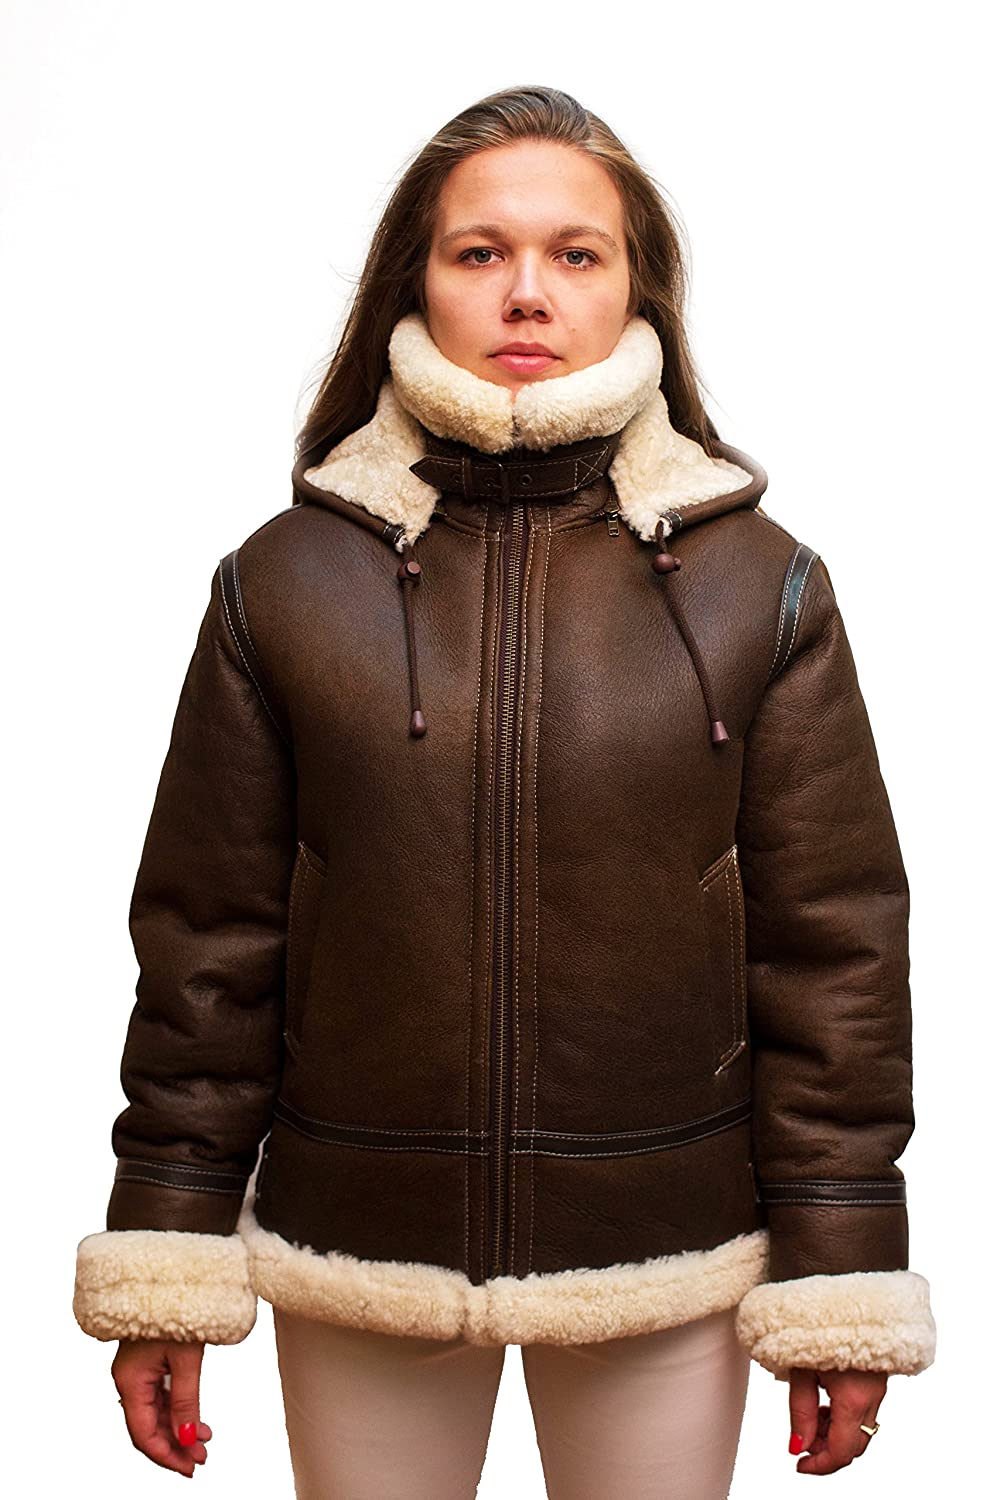 Save big on women's coats from top brands. Free Shipping salestopp1se.gq In-Store Returns · Save on Top Brands · Style for Less · Shop New Winter StylesTypes: Jackets & Coats, Dresses, Baby Gear, Suits, Juniors, Shoes, Kids.